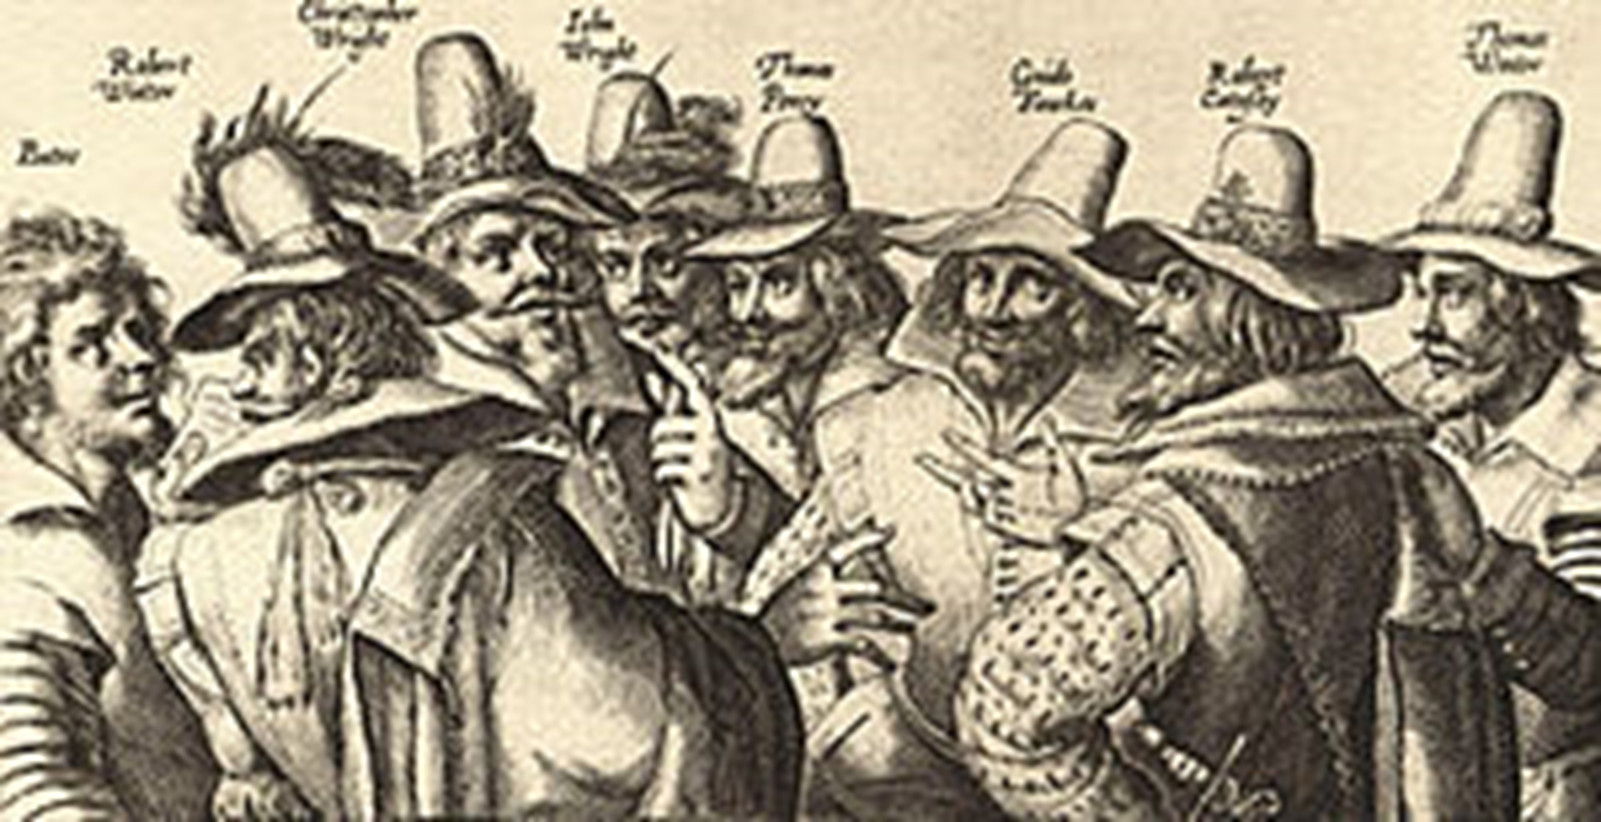 drawing of seven men with Fawkes